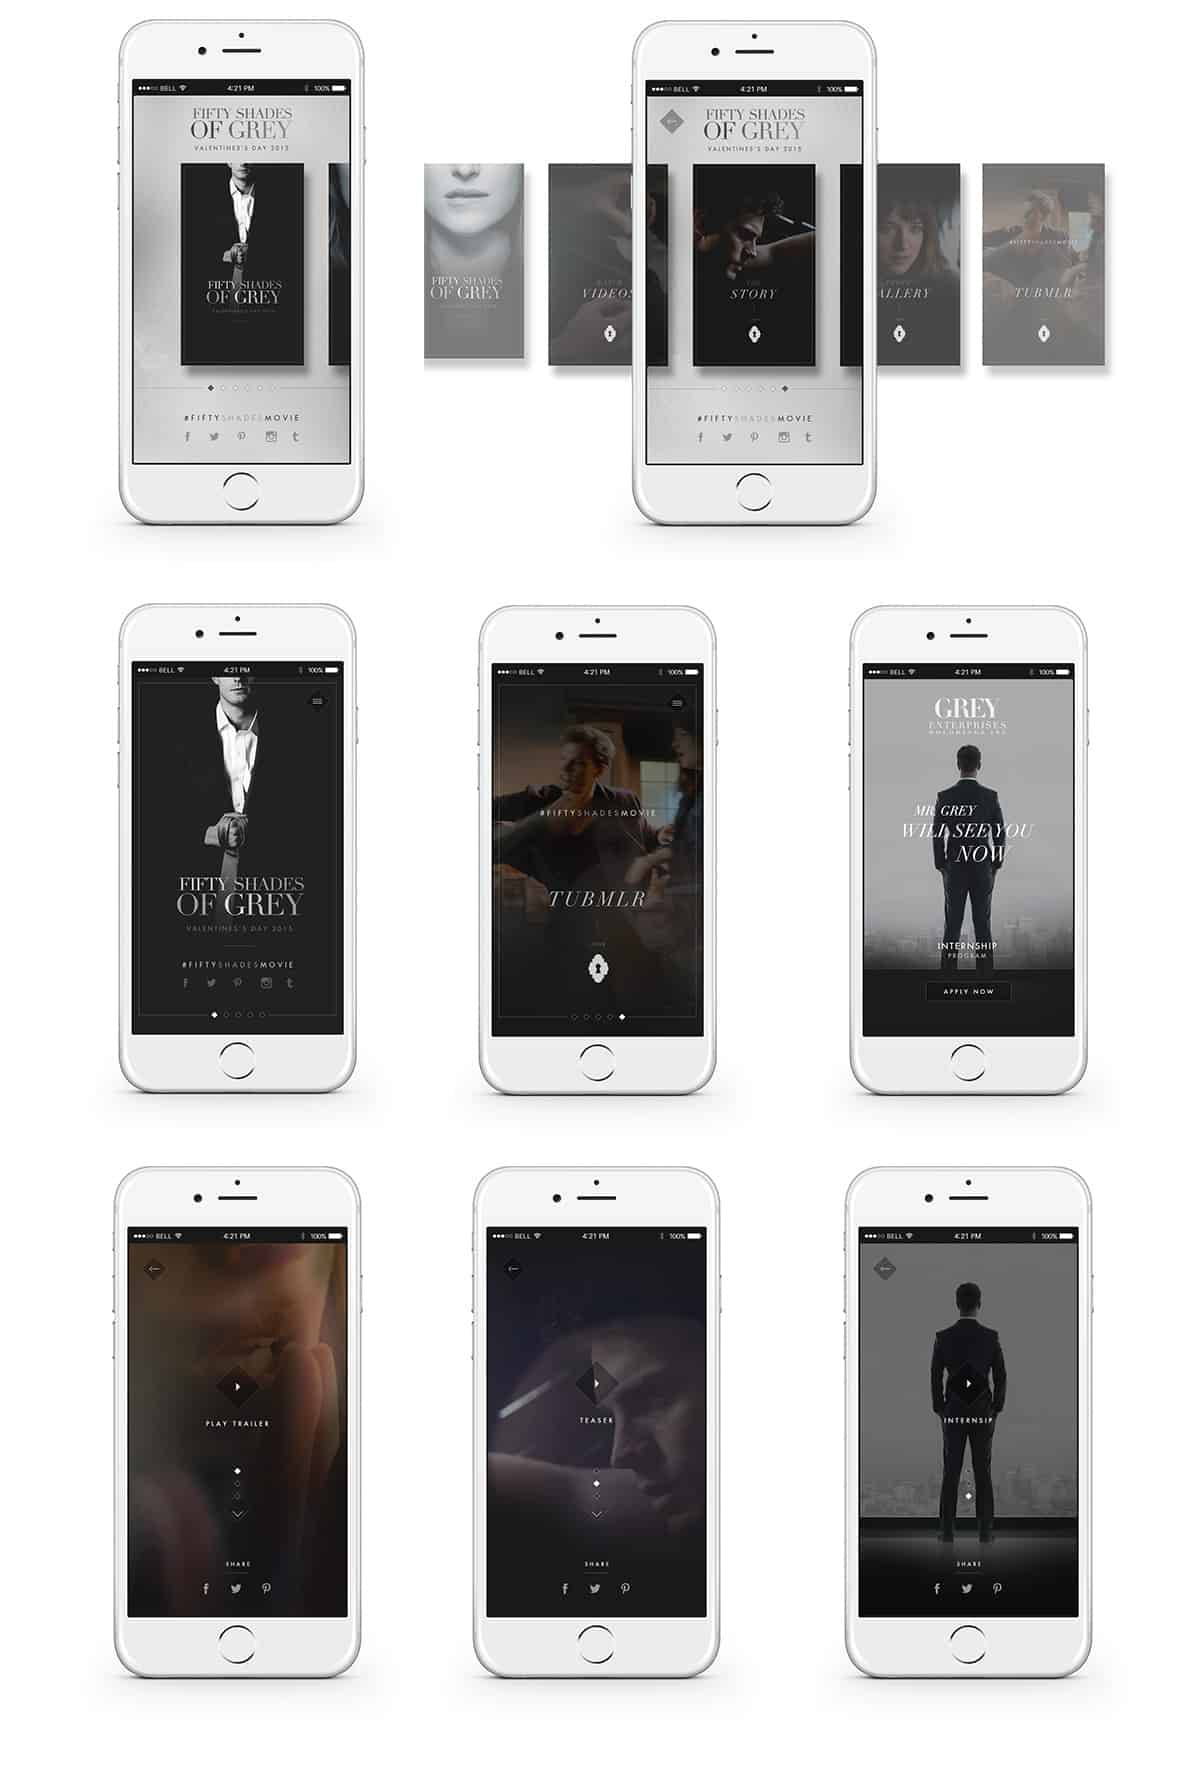 fifty shades of grey website by keith evans design ideas as for inspiration i can t really explain it there are so many talented people putting out amazing work there is just something about certain designers